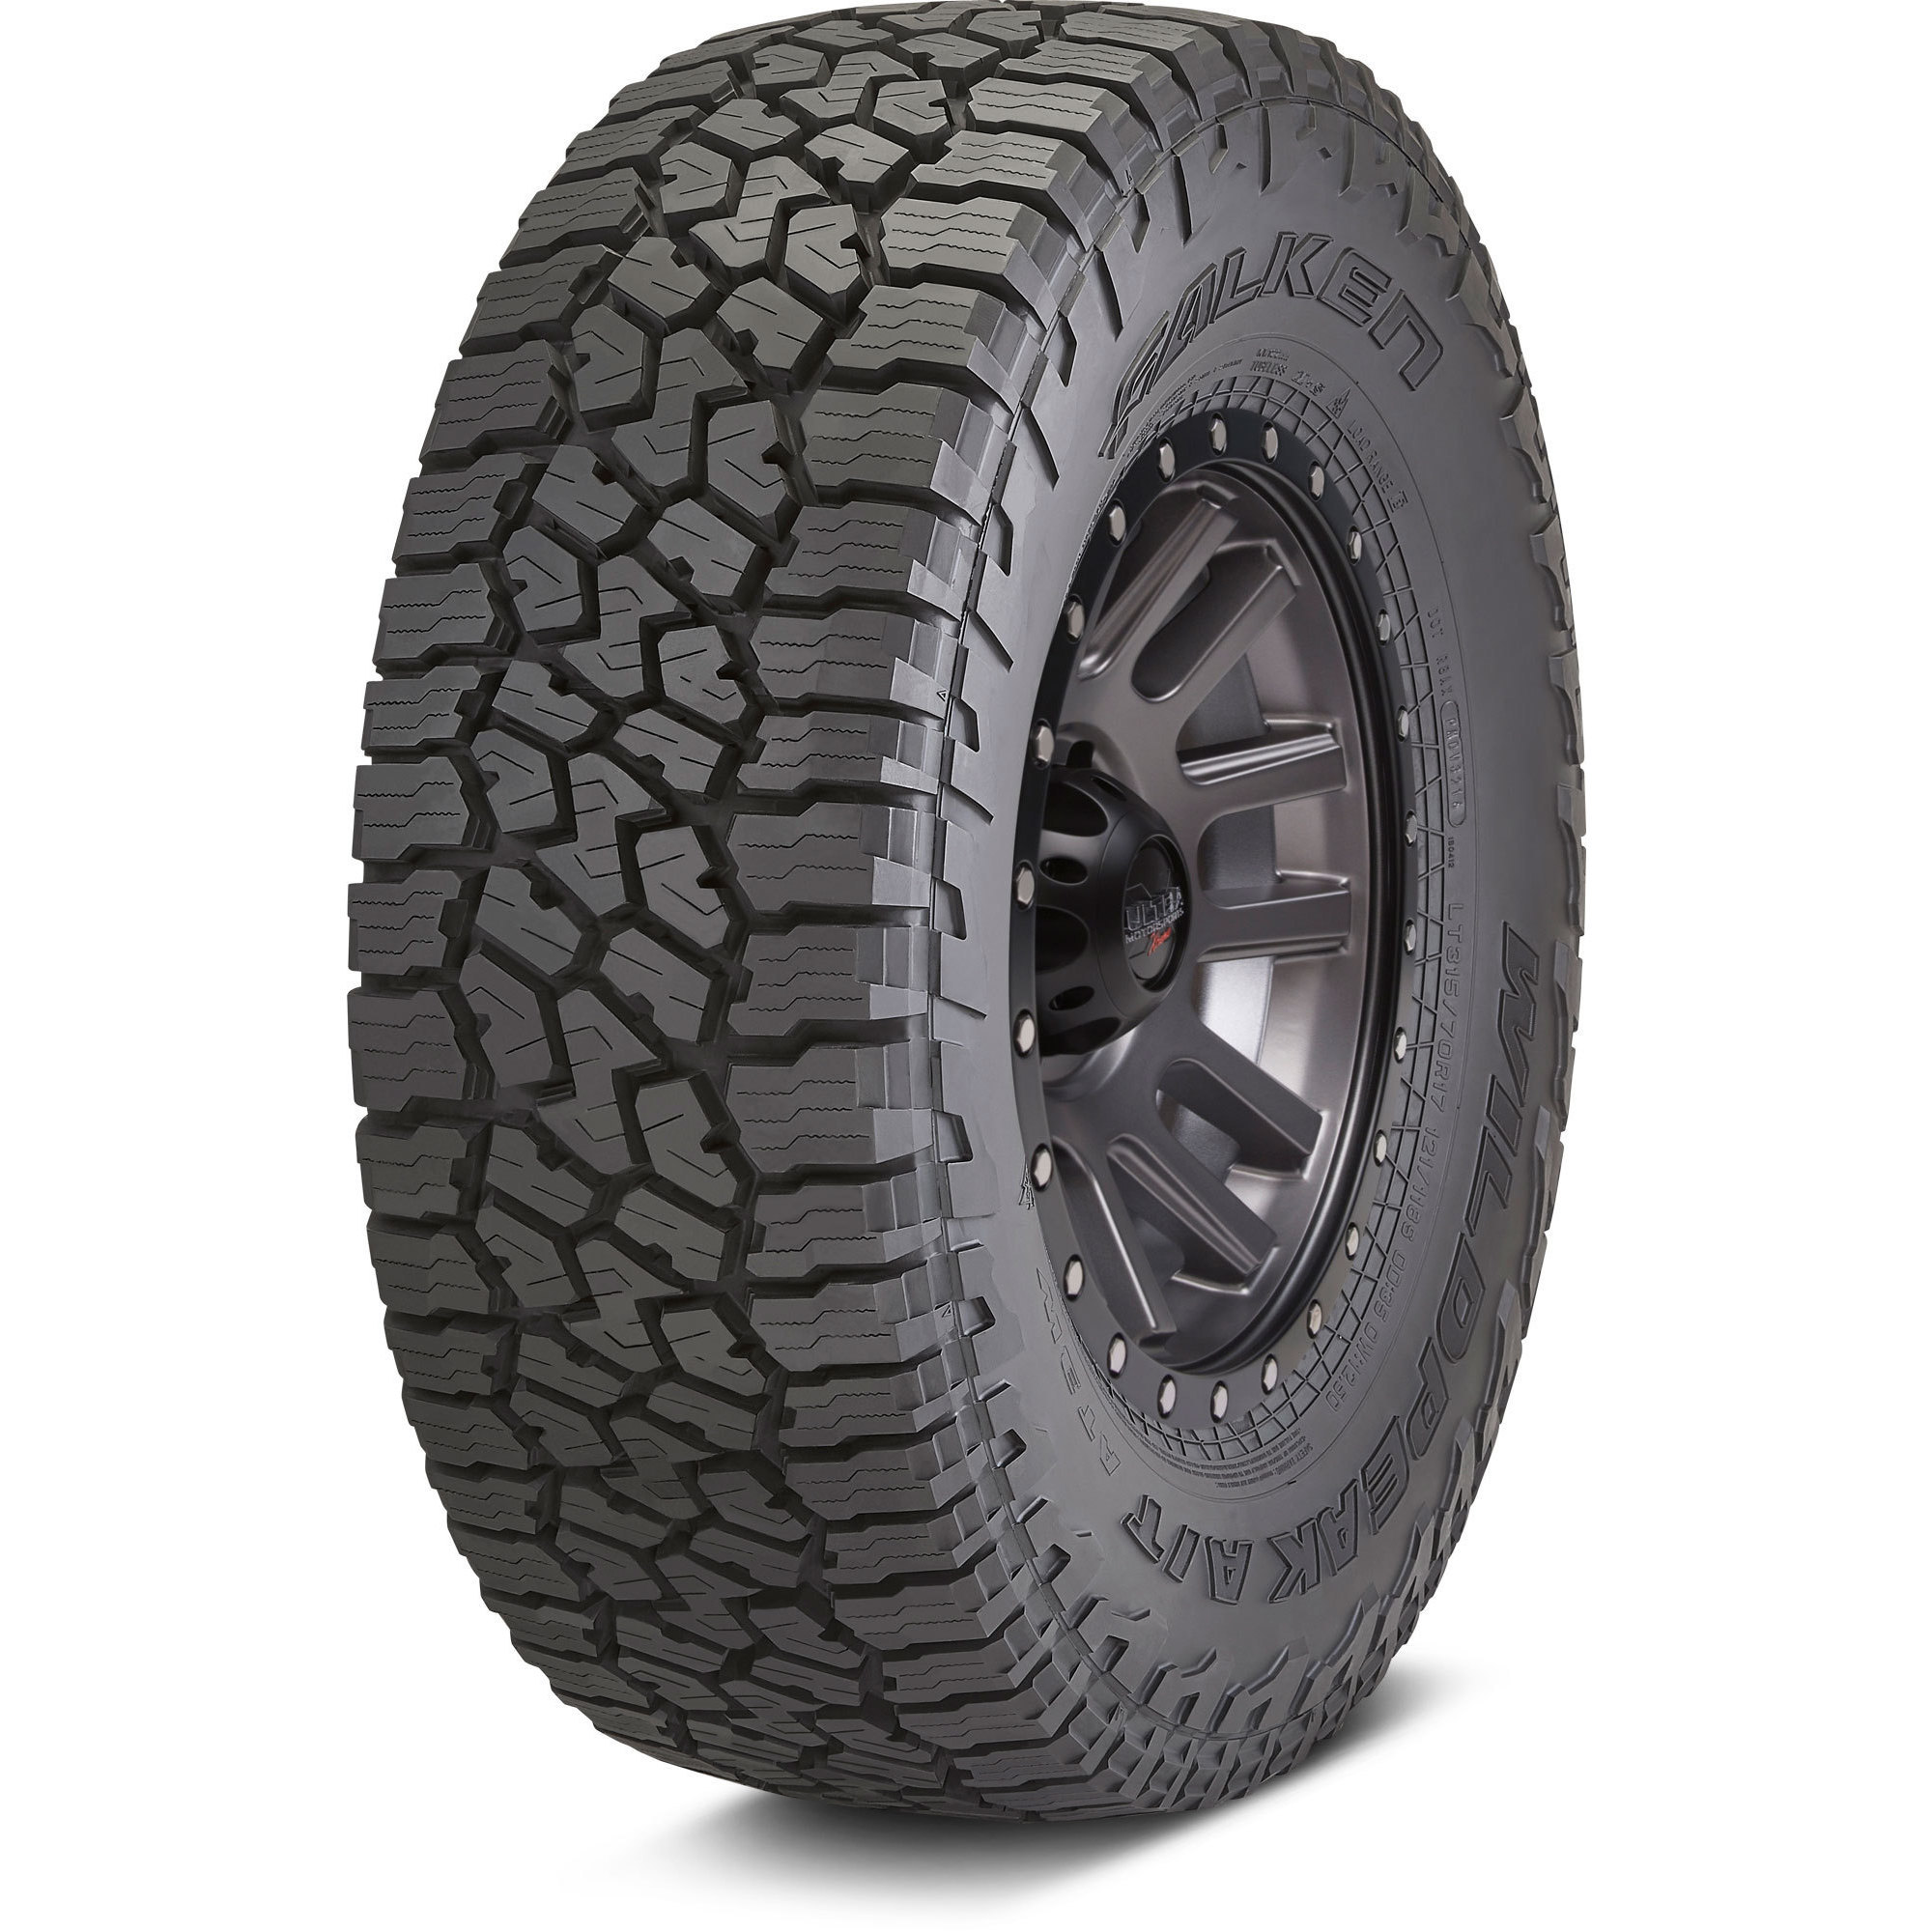 Falken wildpeak tires